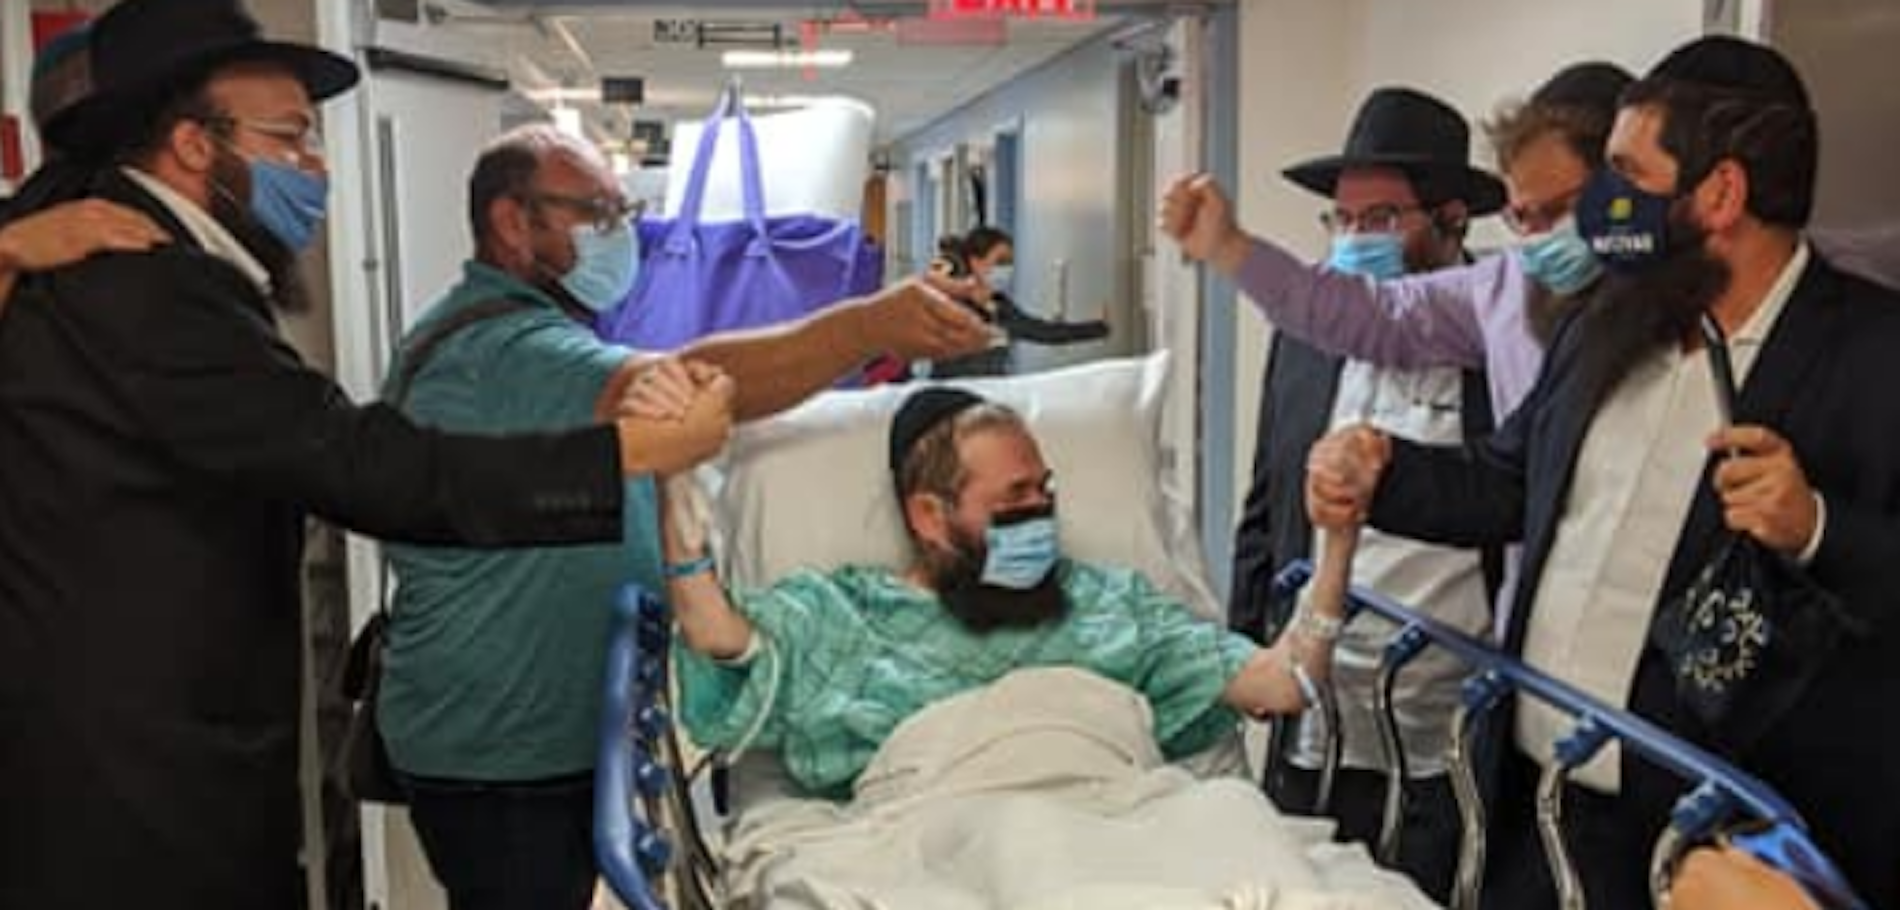 Hospital Staff Dances and Sings for Covid Patient Leaving the ICU After 158 Days & Other Orthodox Jews in the News